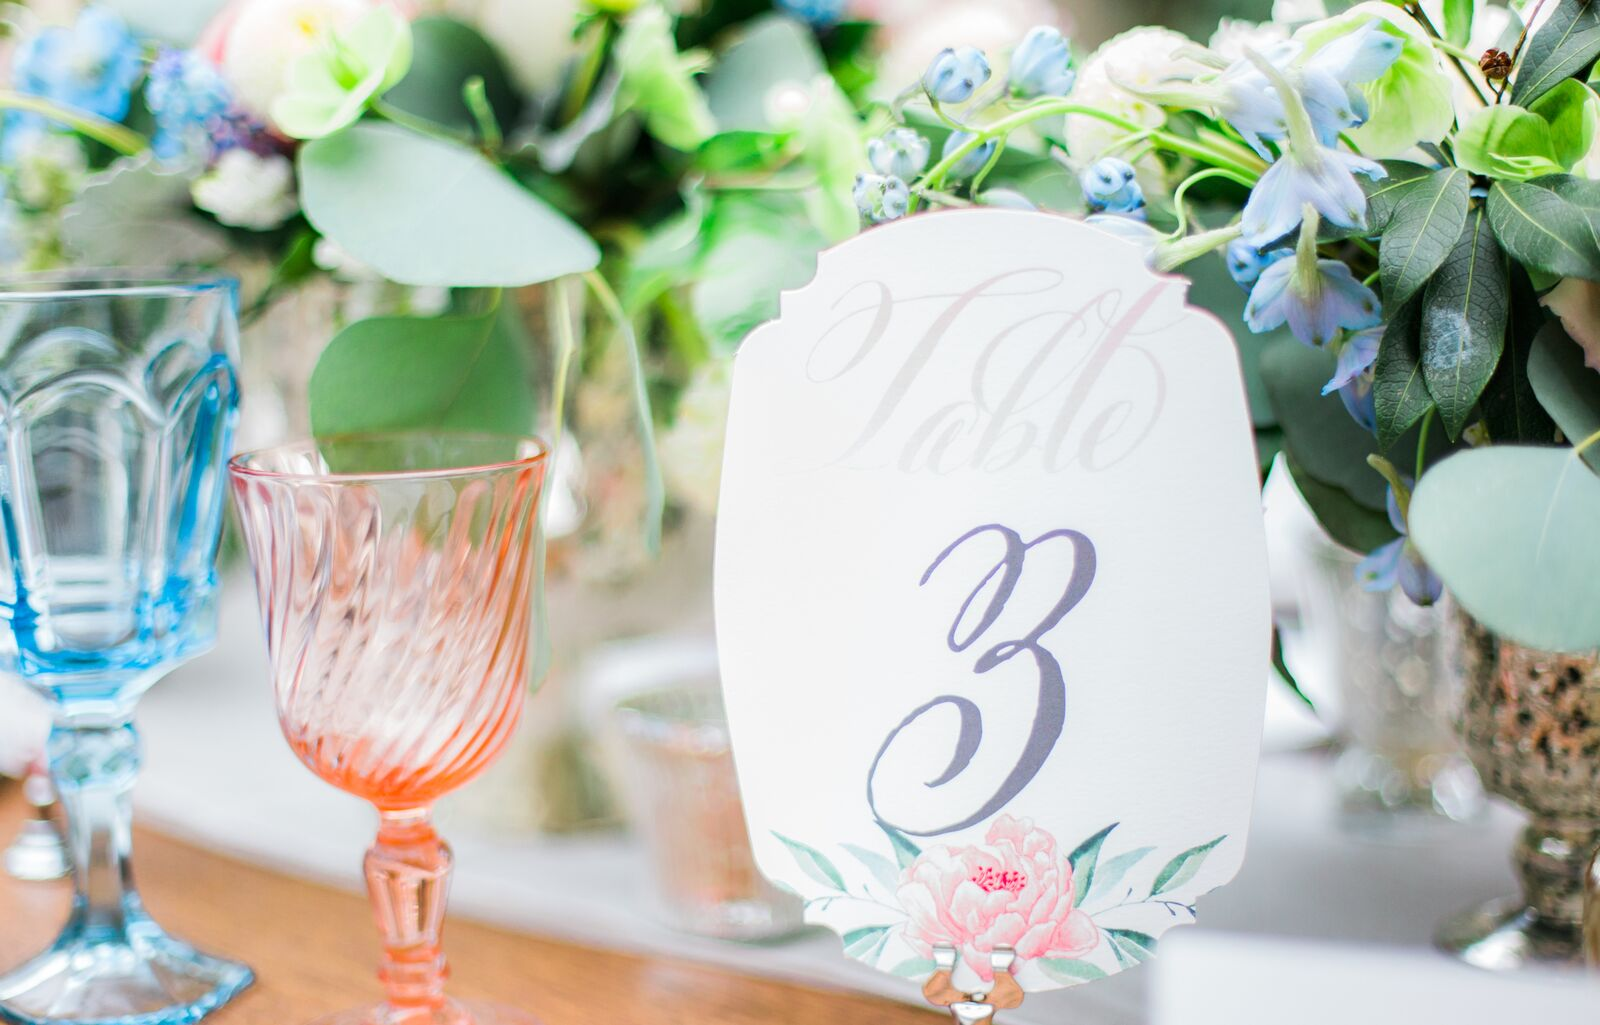 Spring Garden Shower  Spring Shower Details  Planning by Wrap It Up Parties